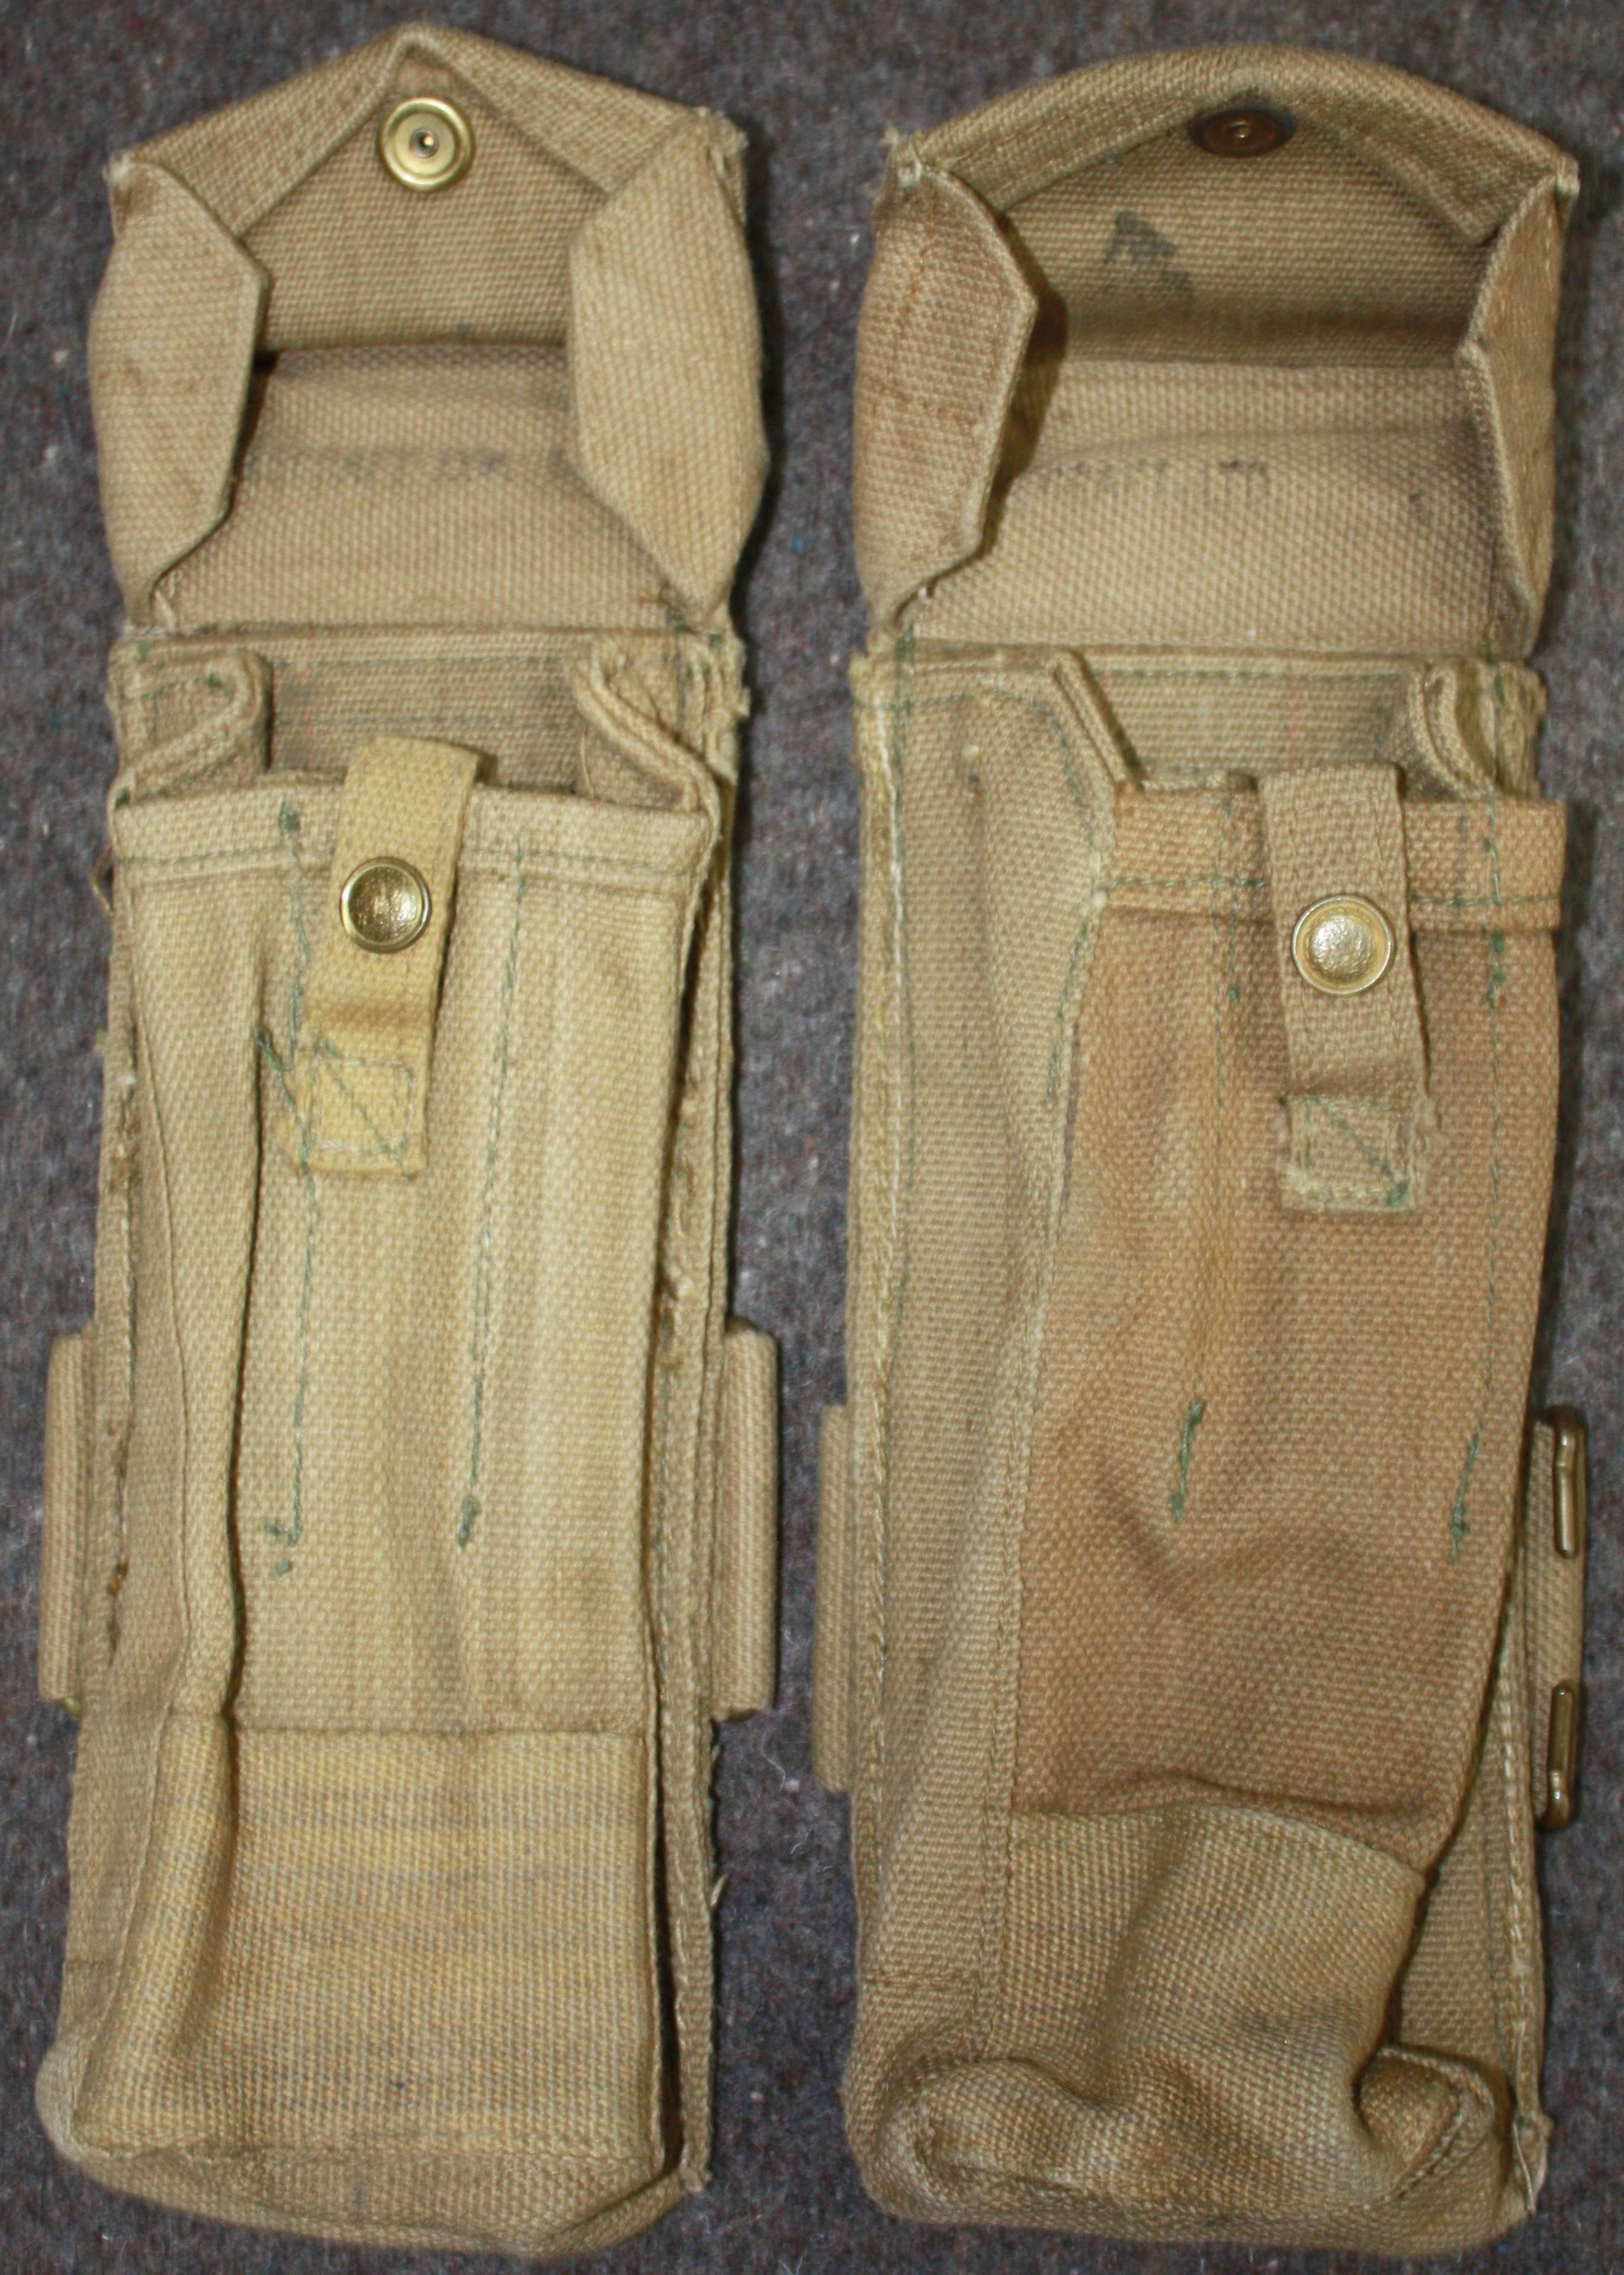 A PAIR OF WWII STEN POUCHES